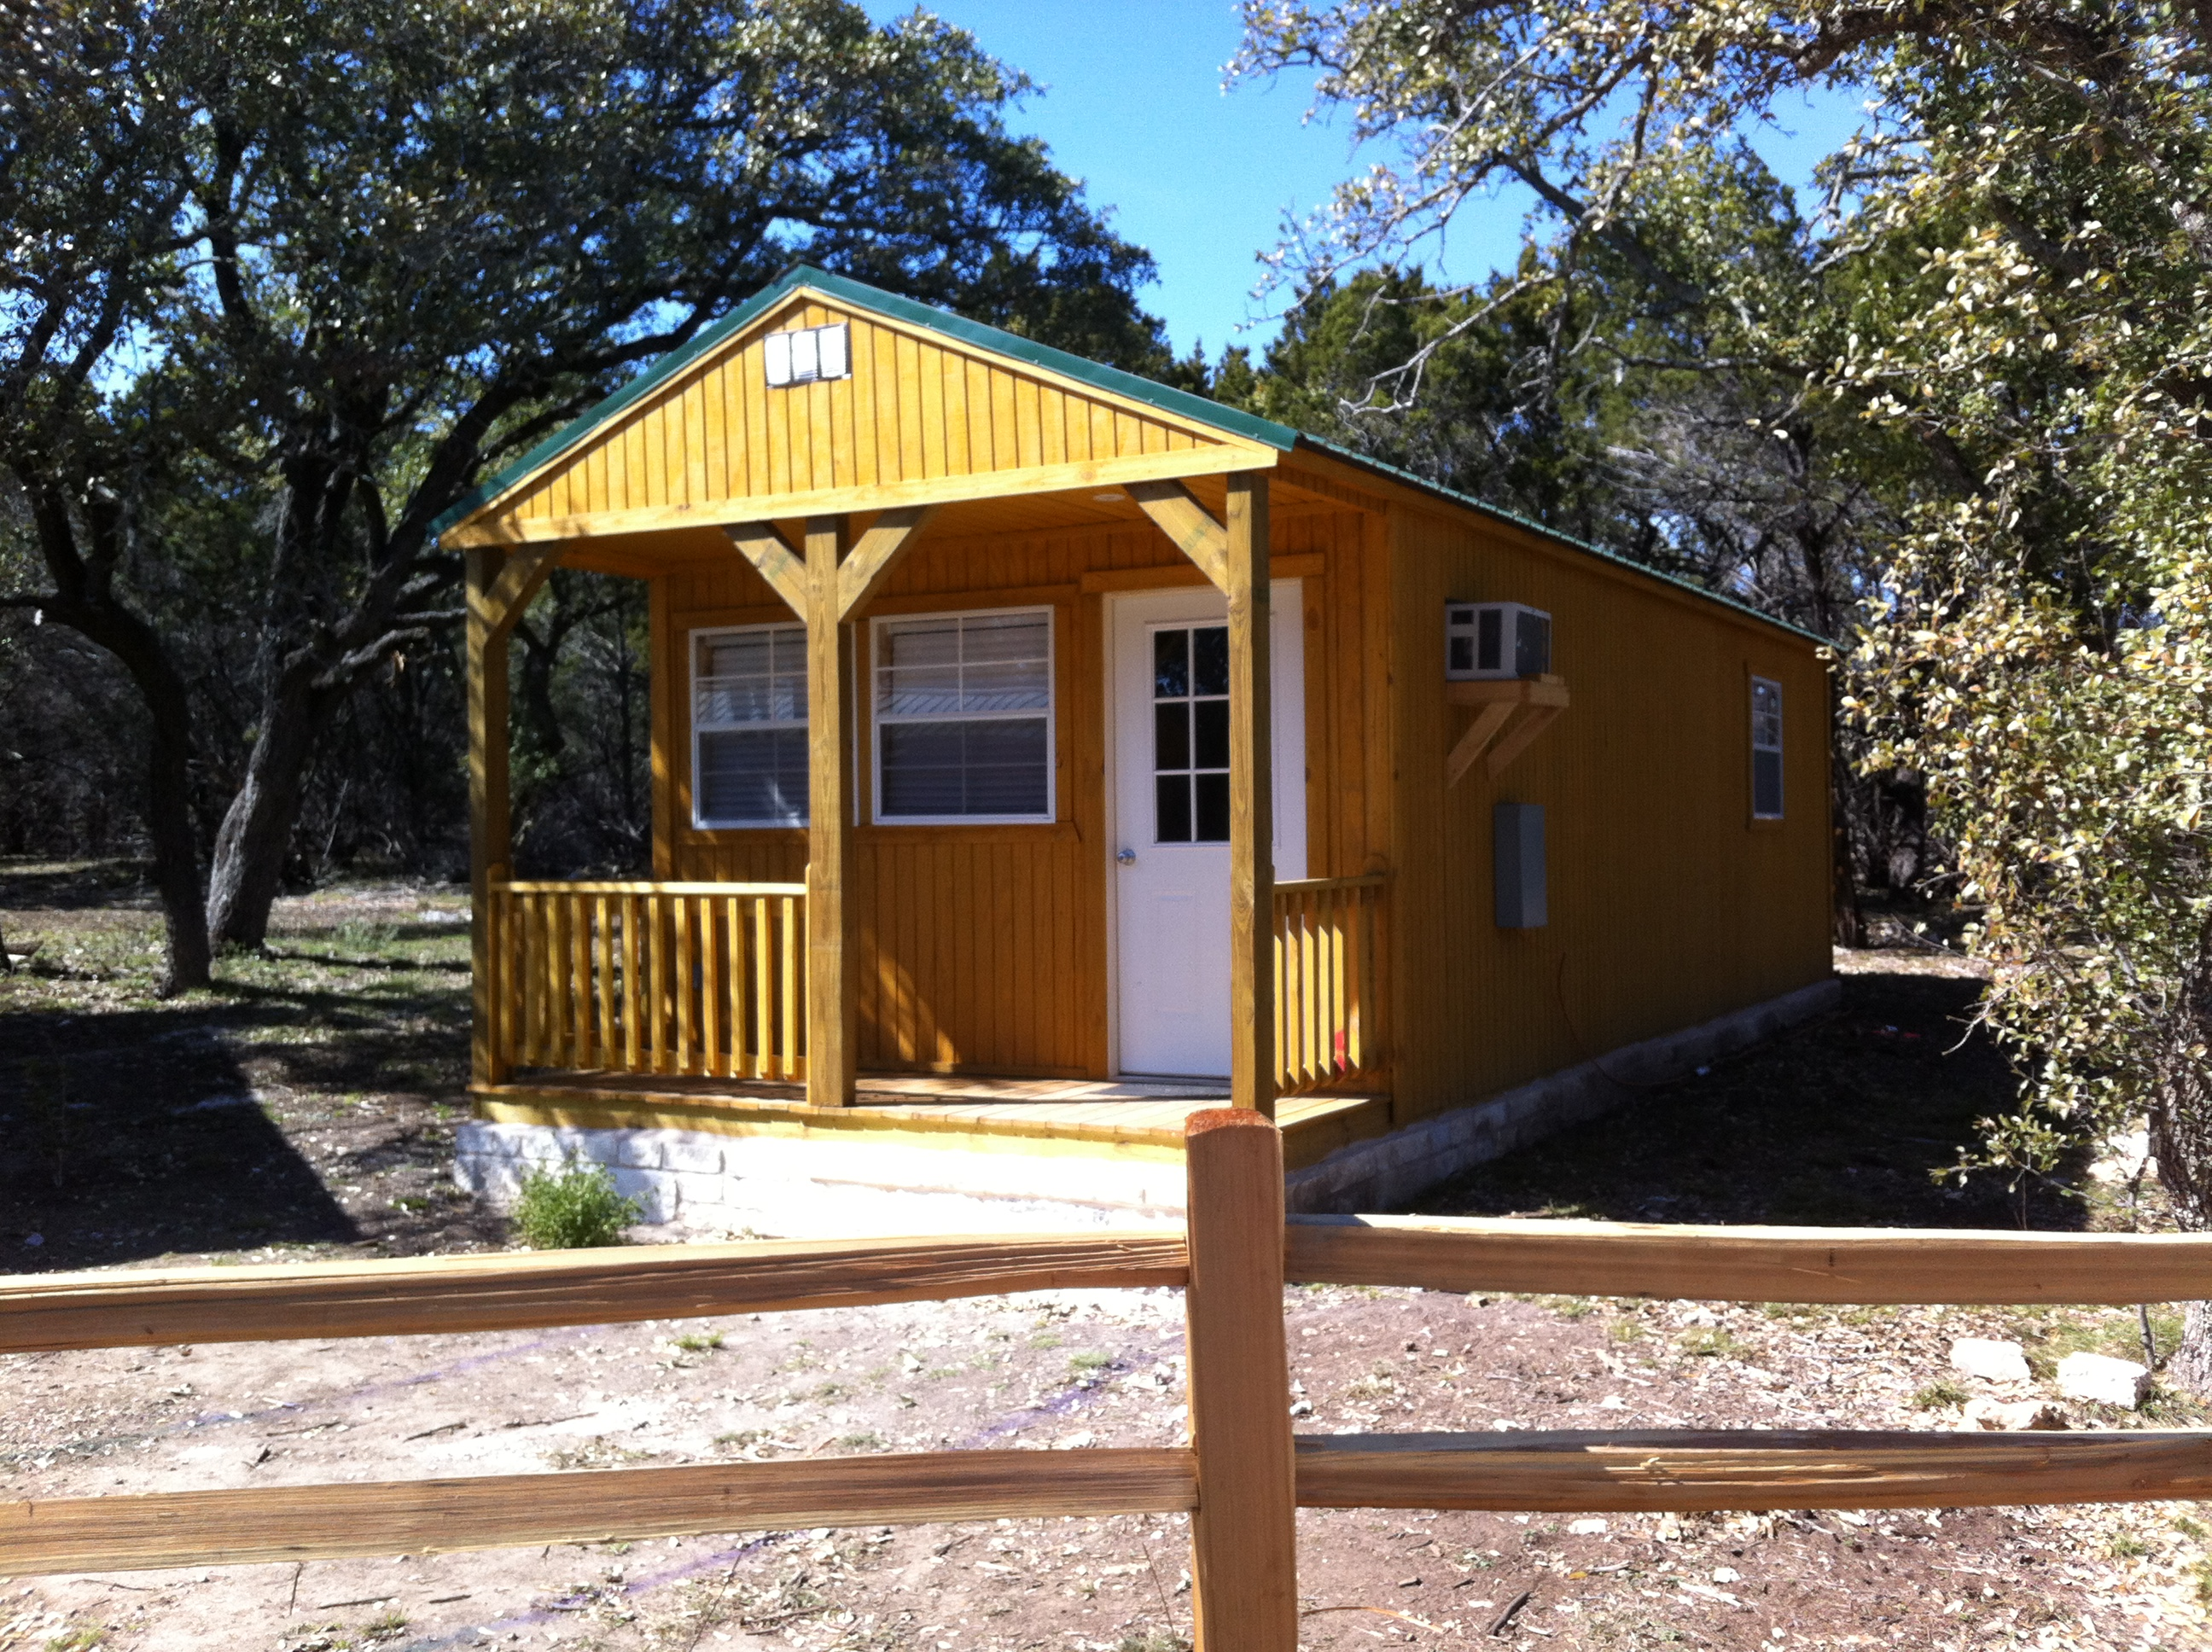 tx img waters accomodations some the in austin travis on retreat eco cabins lake living